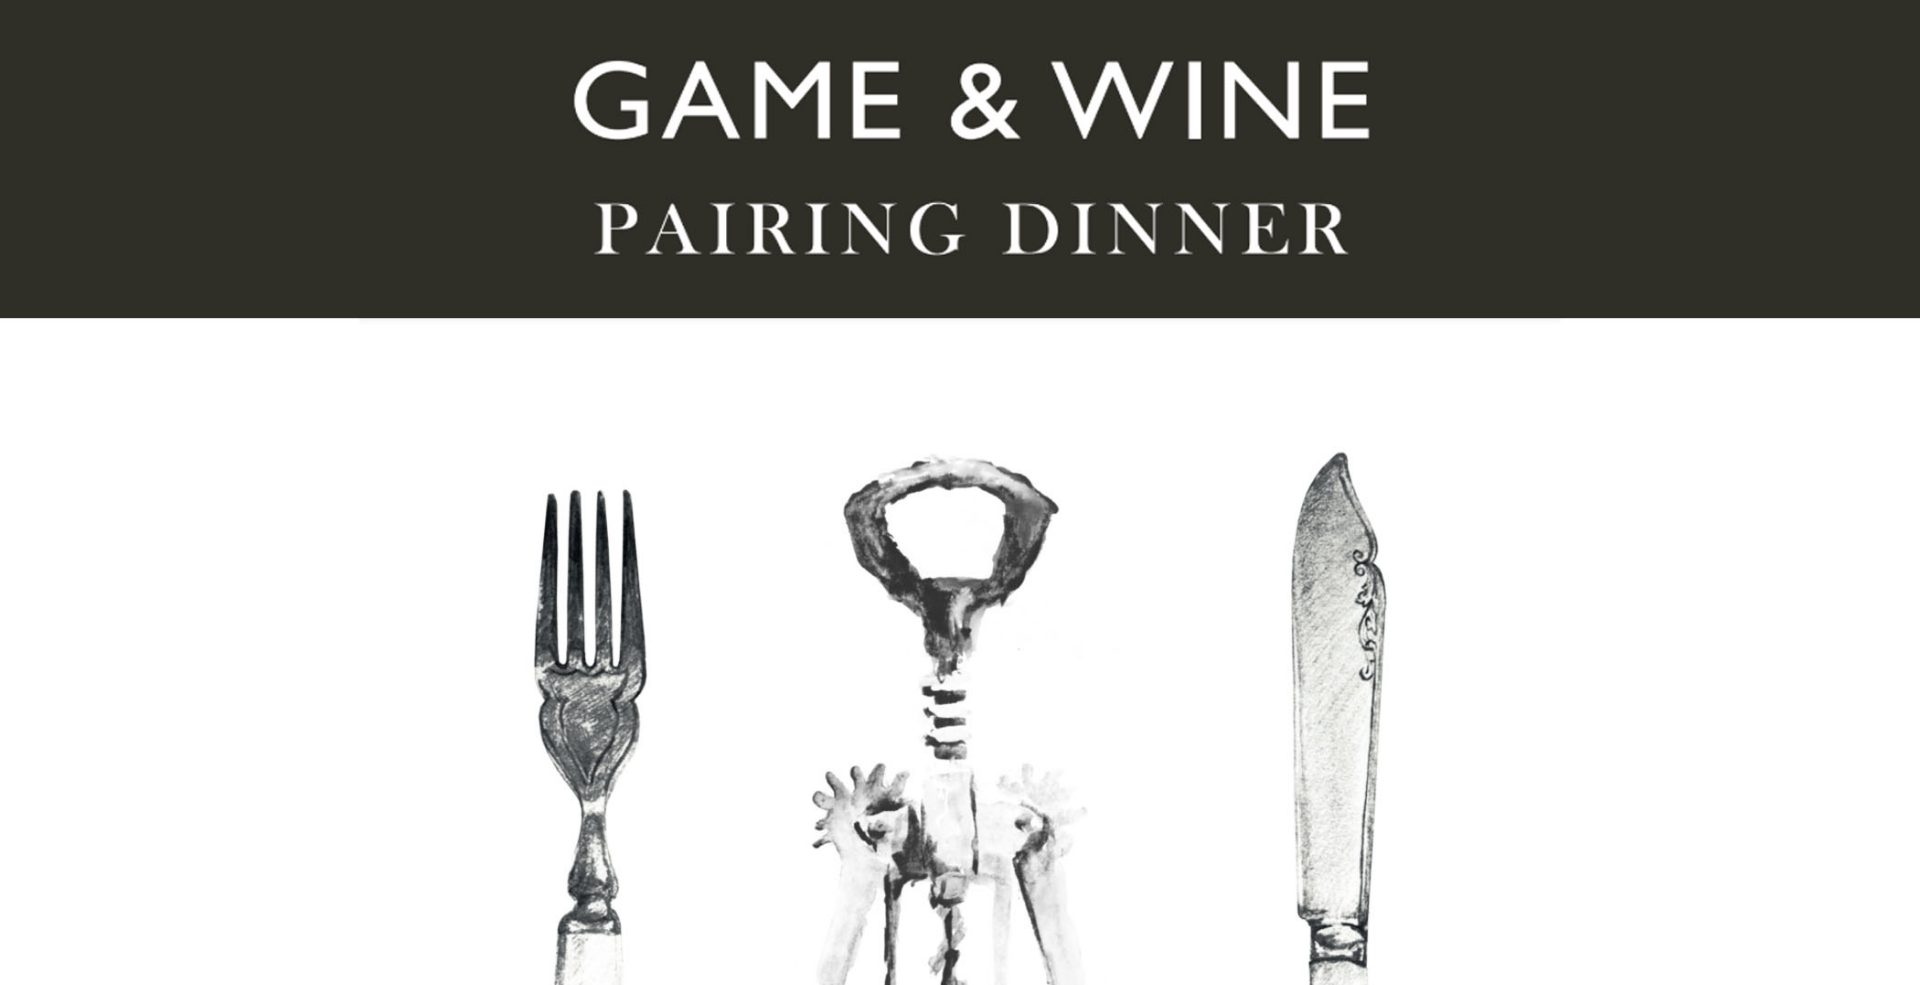 Game and Wine Pairing Dinner